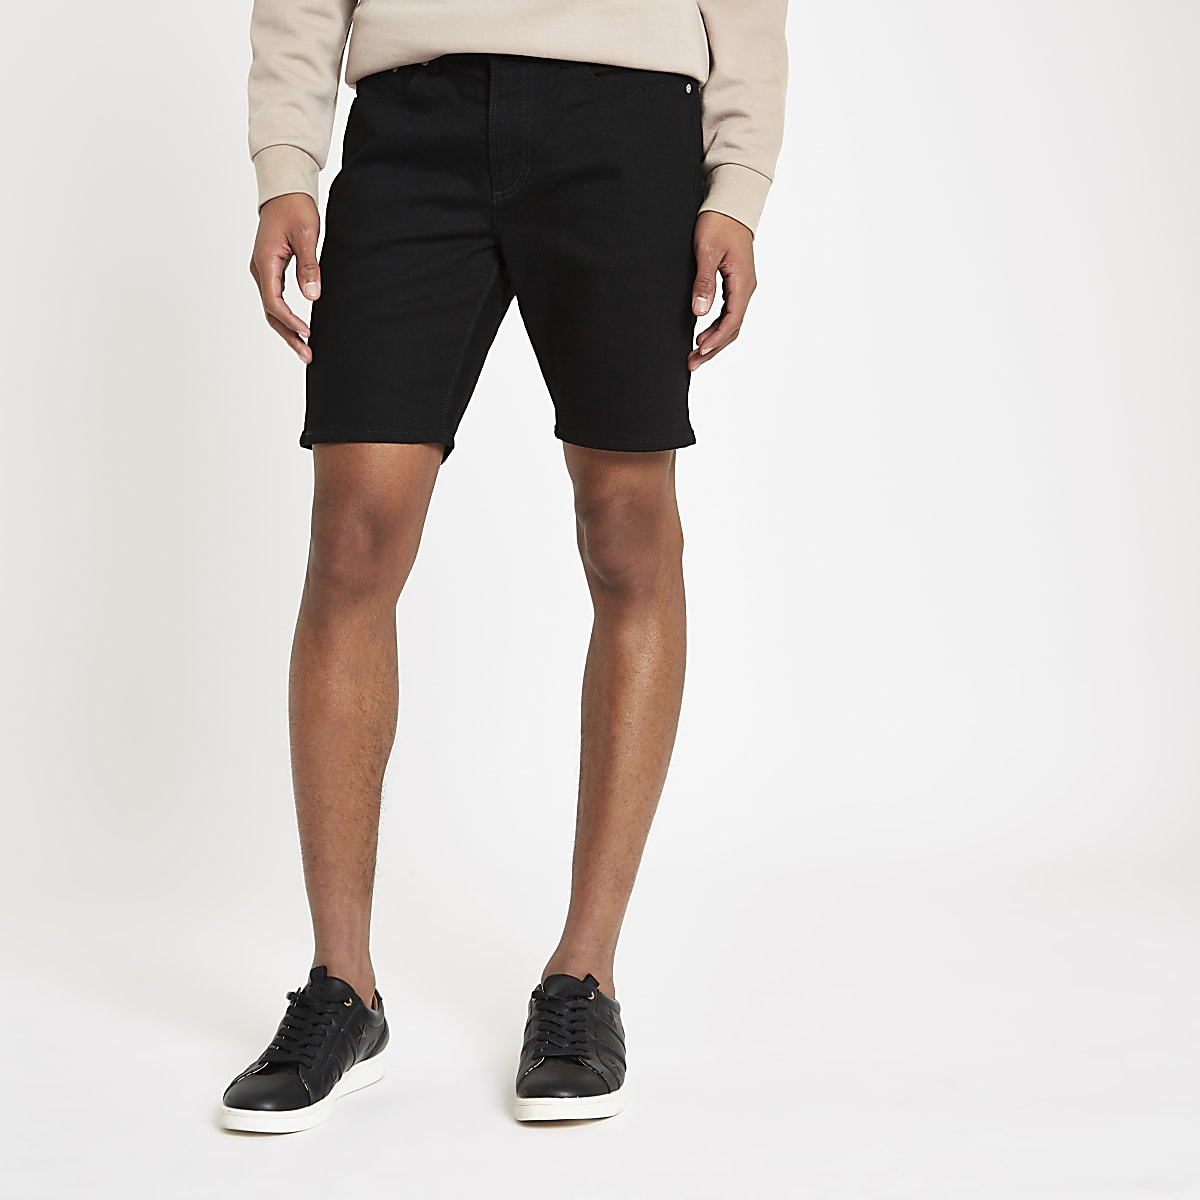 Black slim fit denim shorts